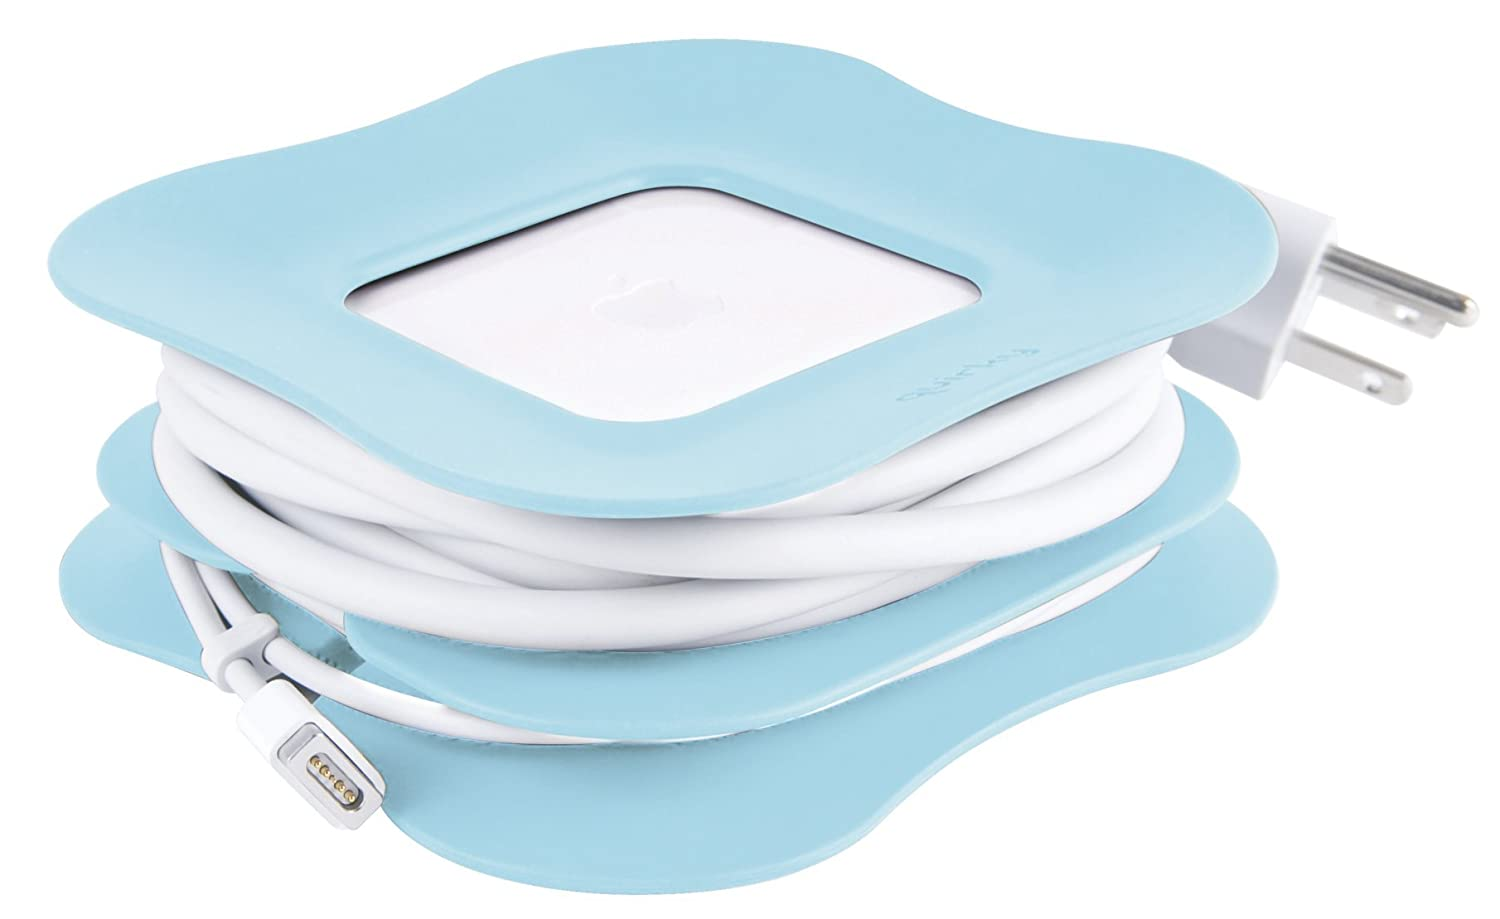 Amazon.com: Quirky PowerCurl 45w Clip-On Cord Wrap for Apple MagSafe ...